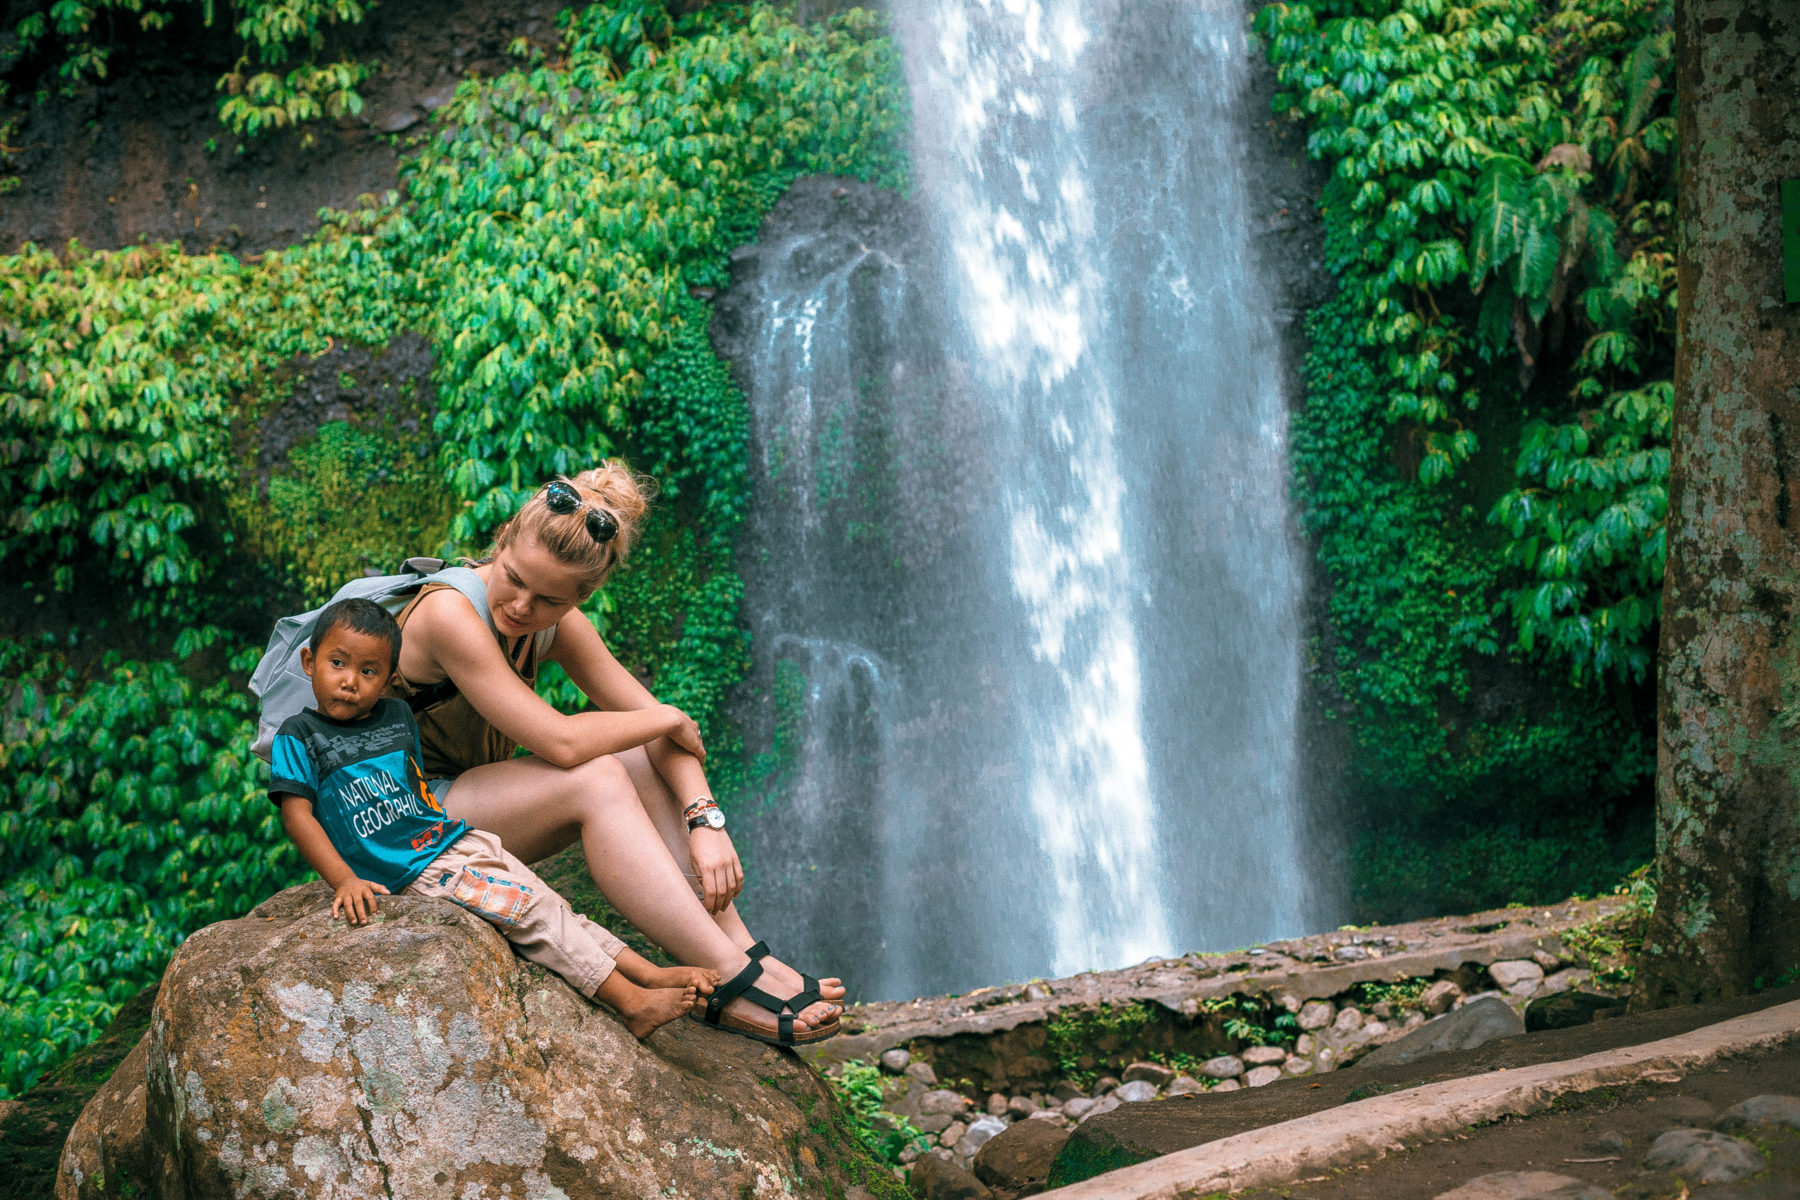 lombok indonesia waterfall green lush jungle exploring traveling local kids